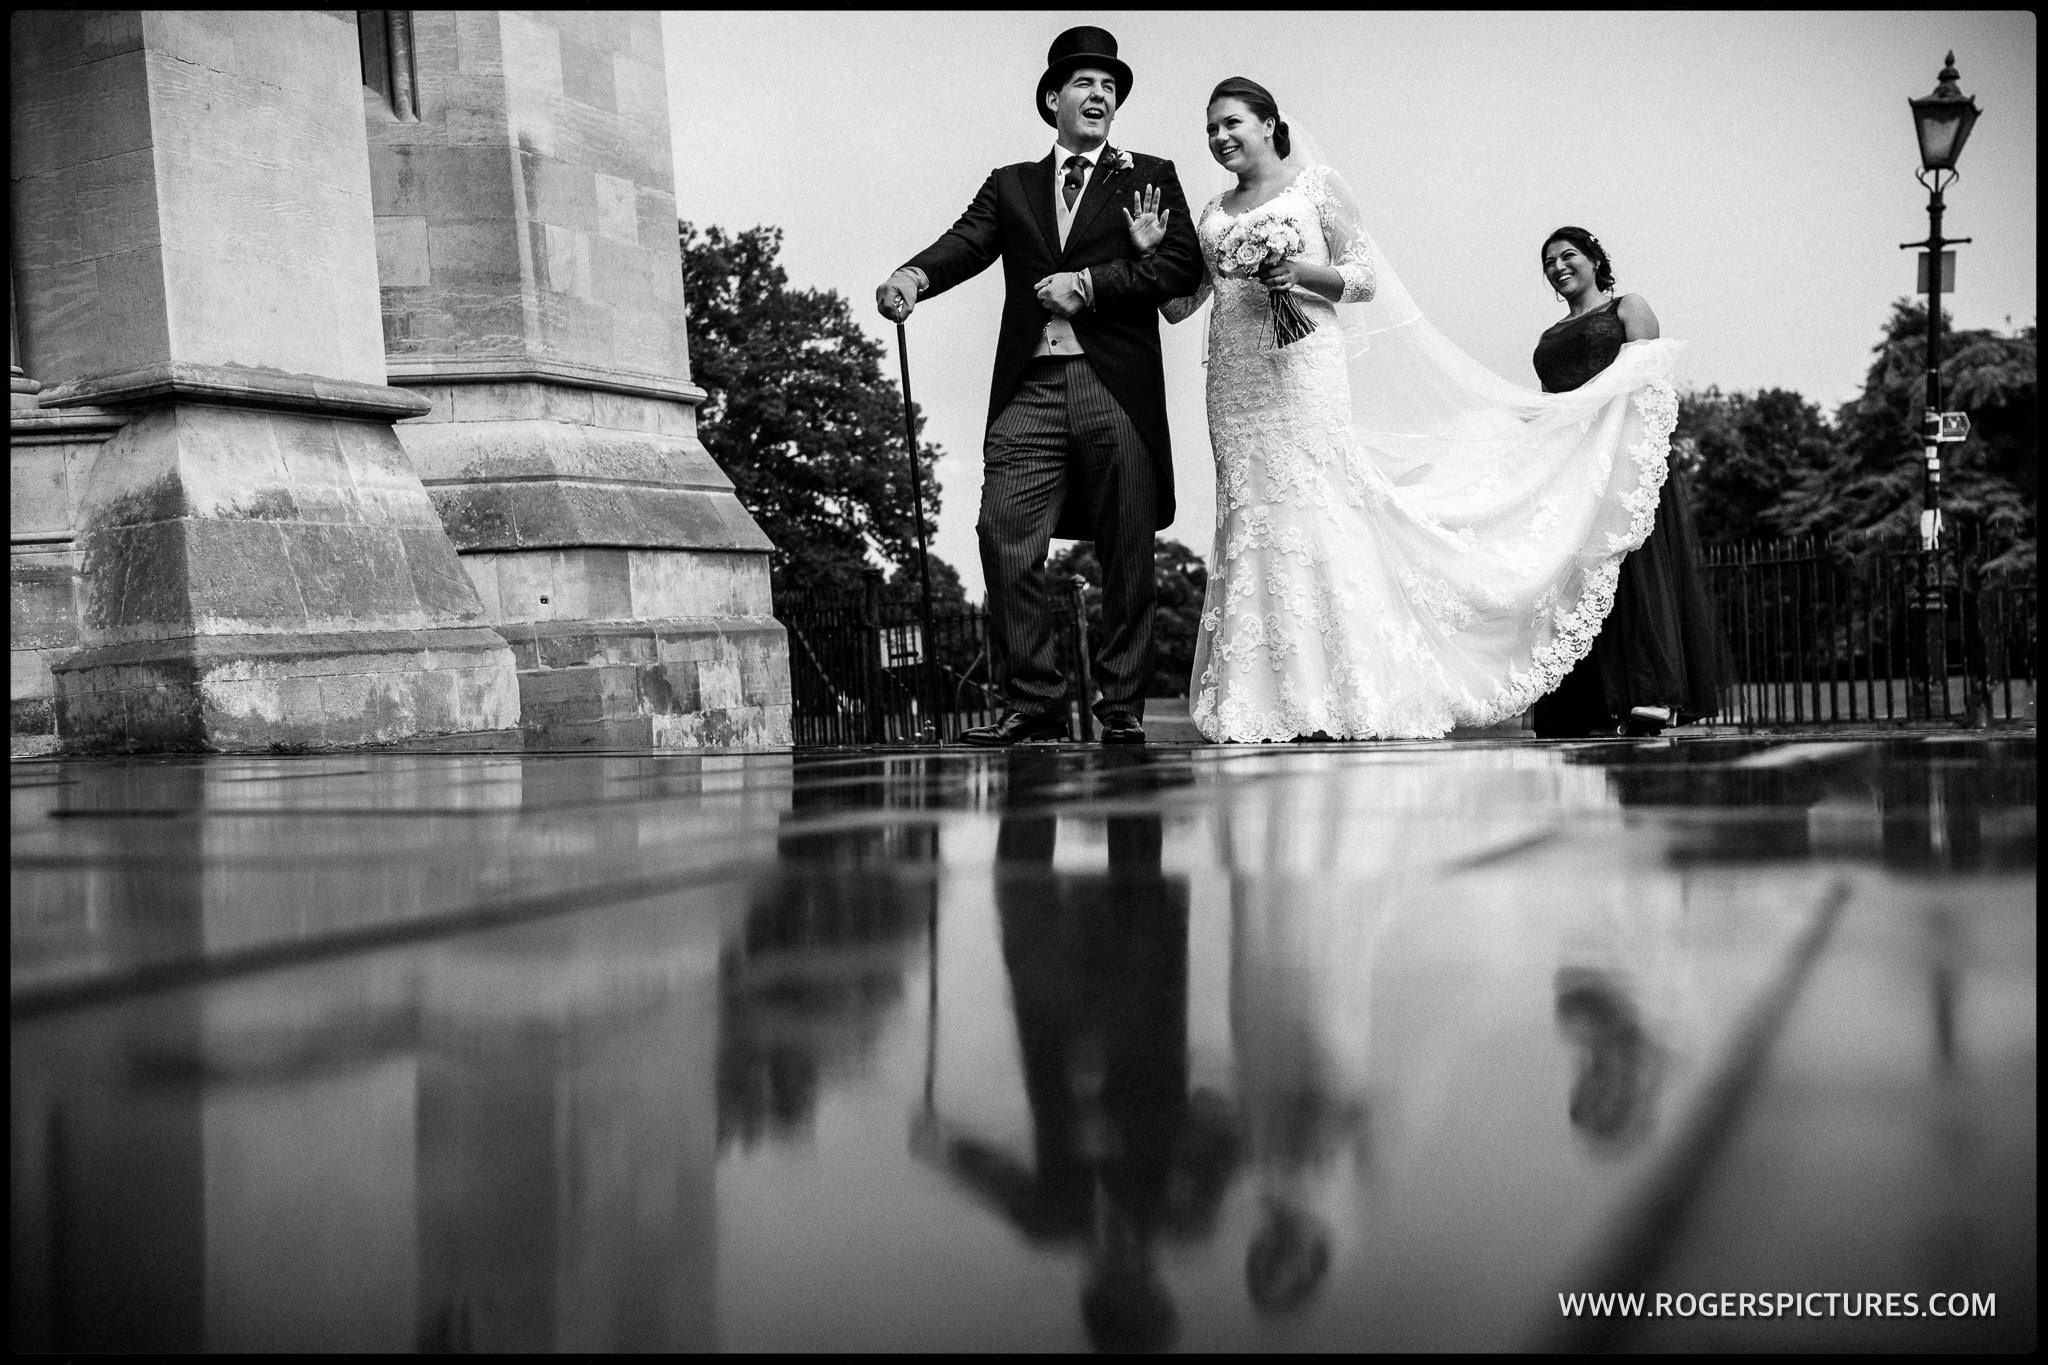 St Albans wet wedding